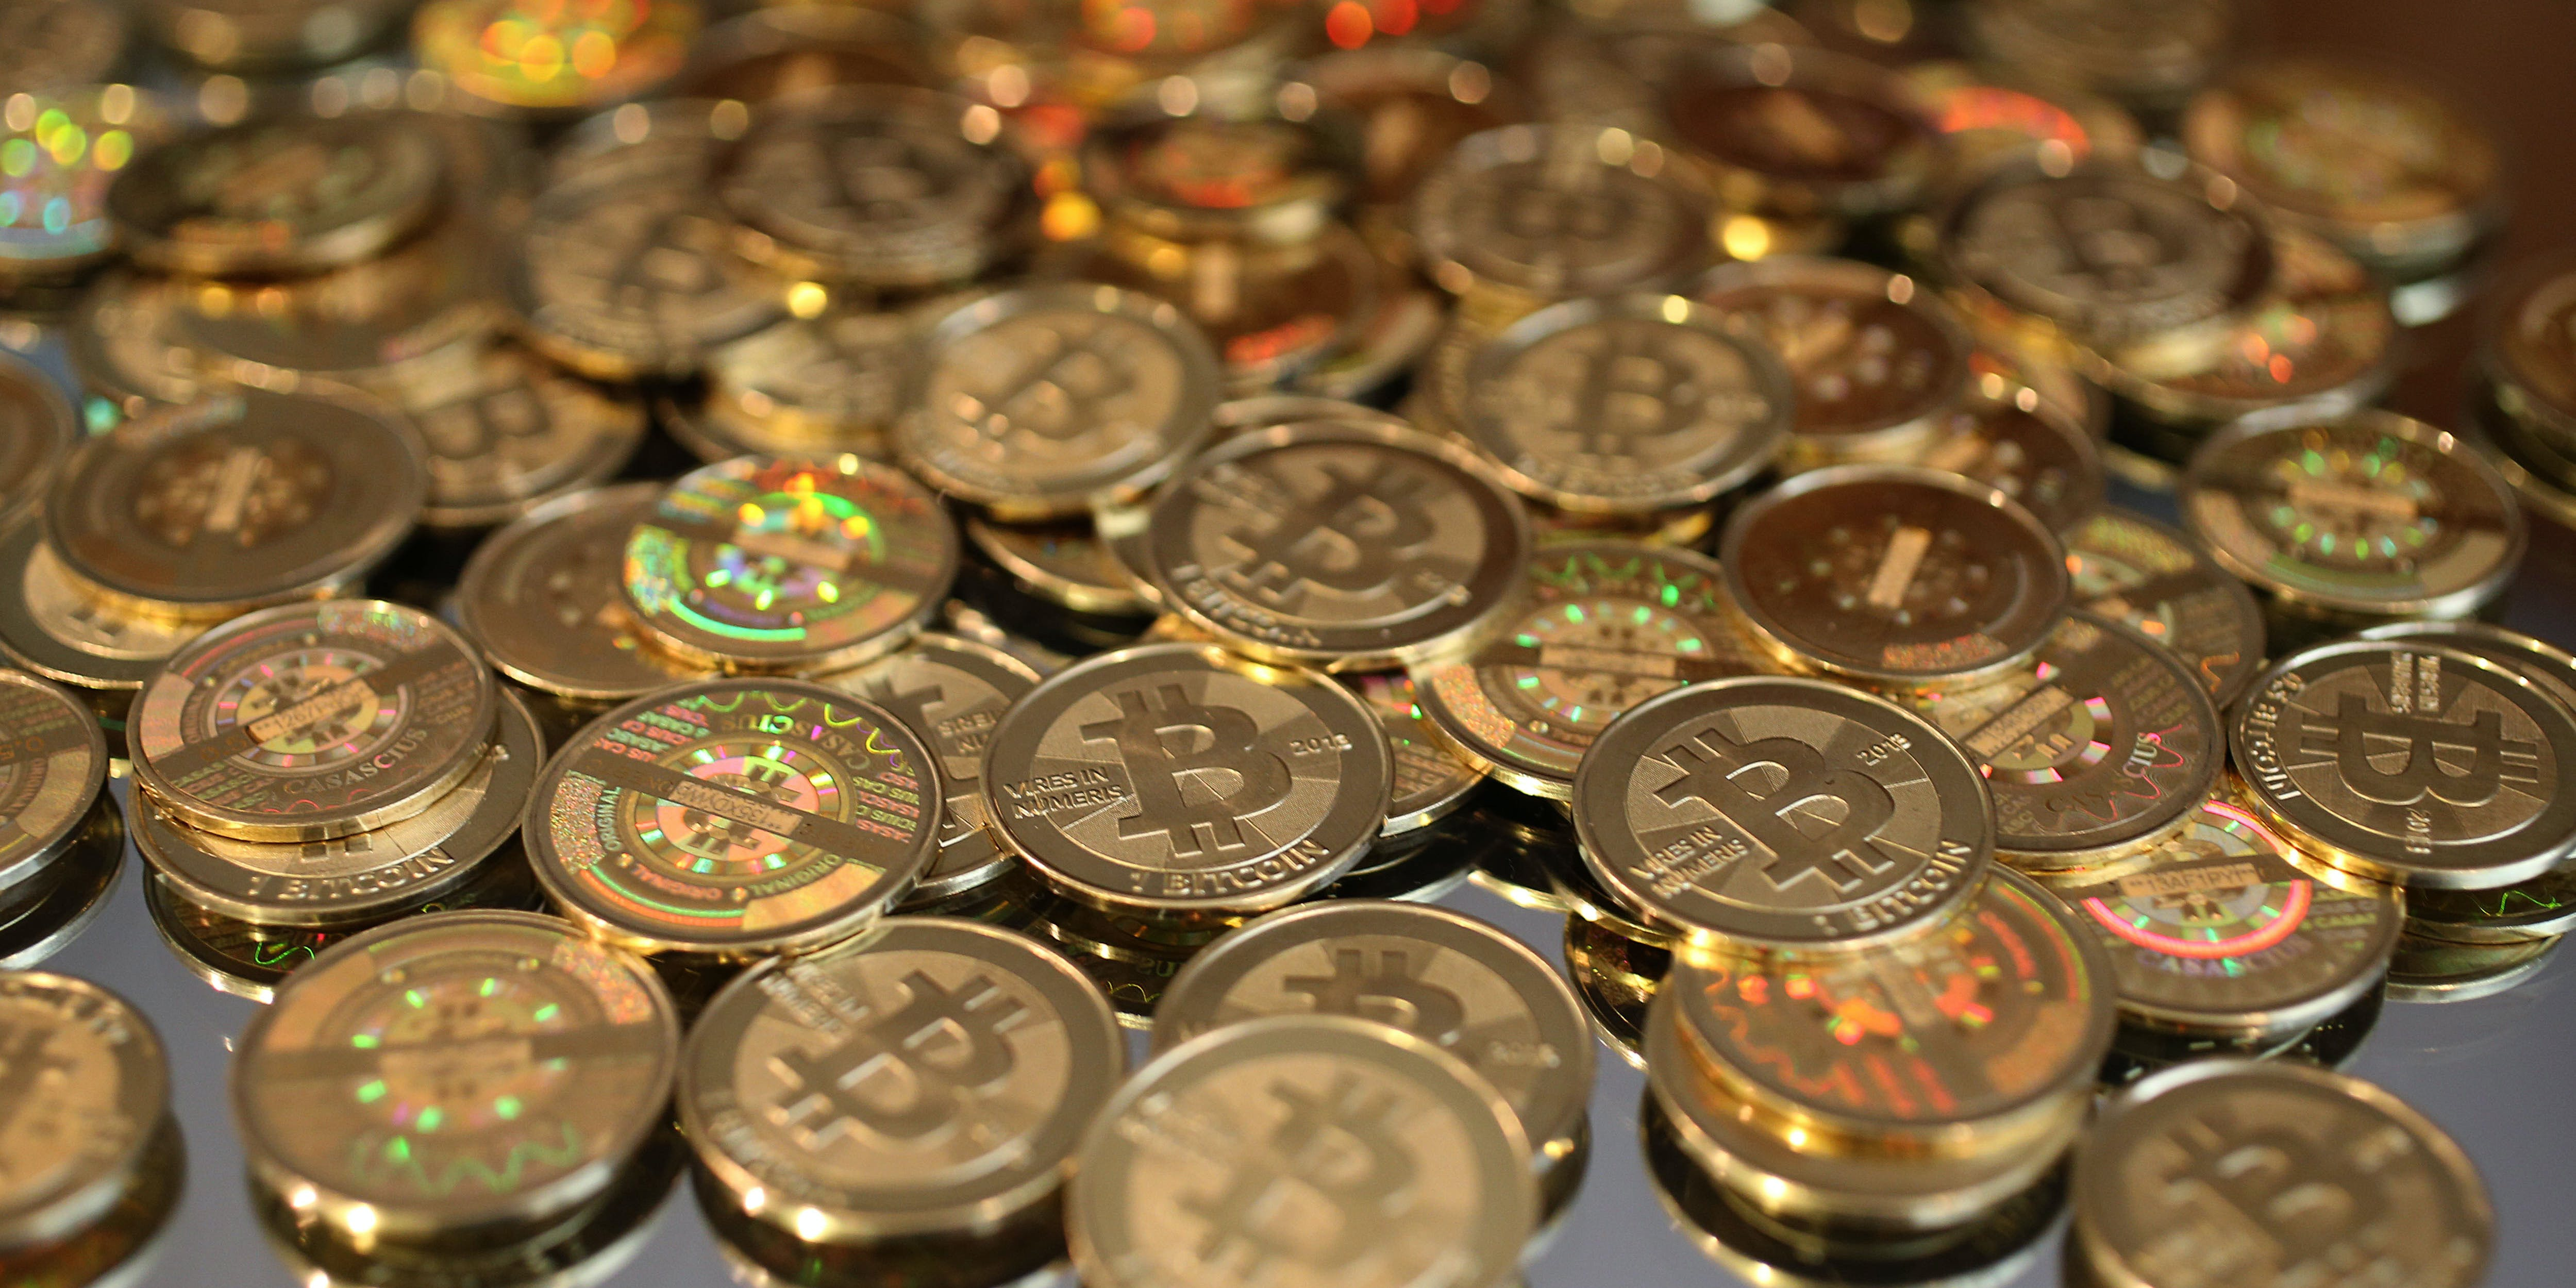 Meet the Bitcoin Experts Who Don't Believe Craig Wright Is Satoshi Nakamoto